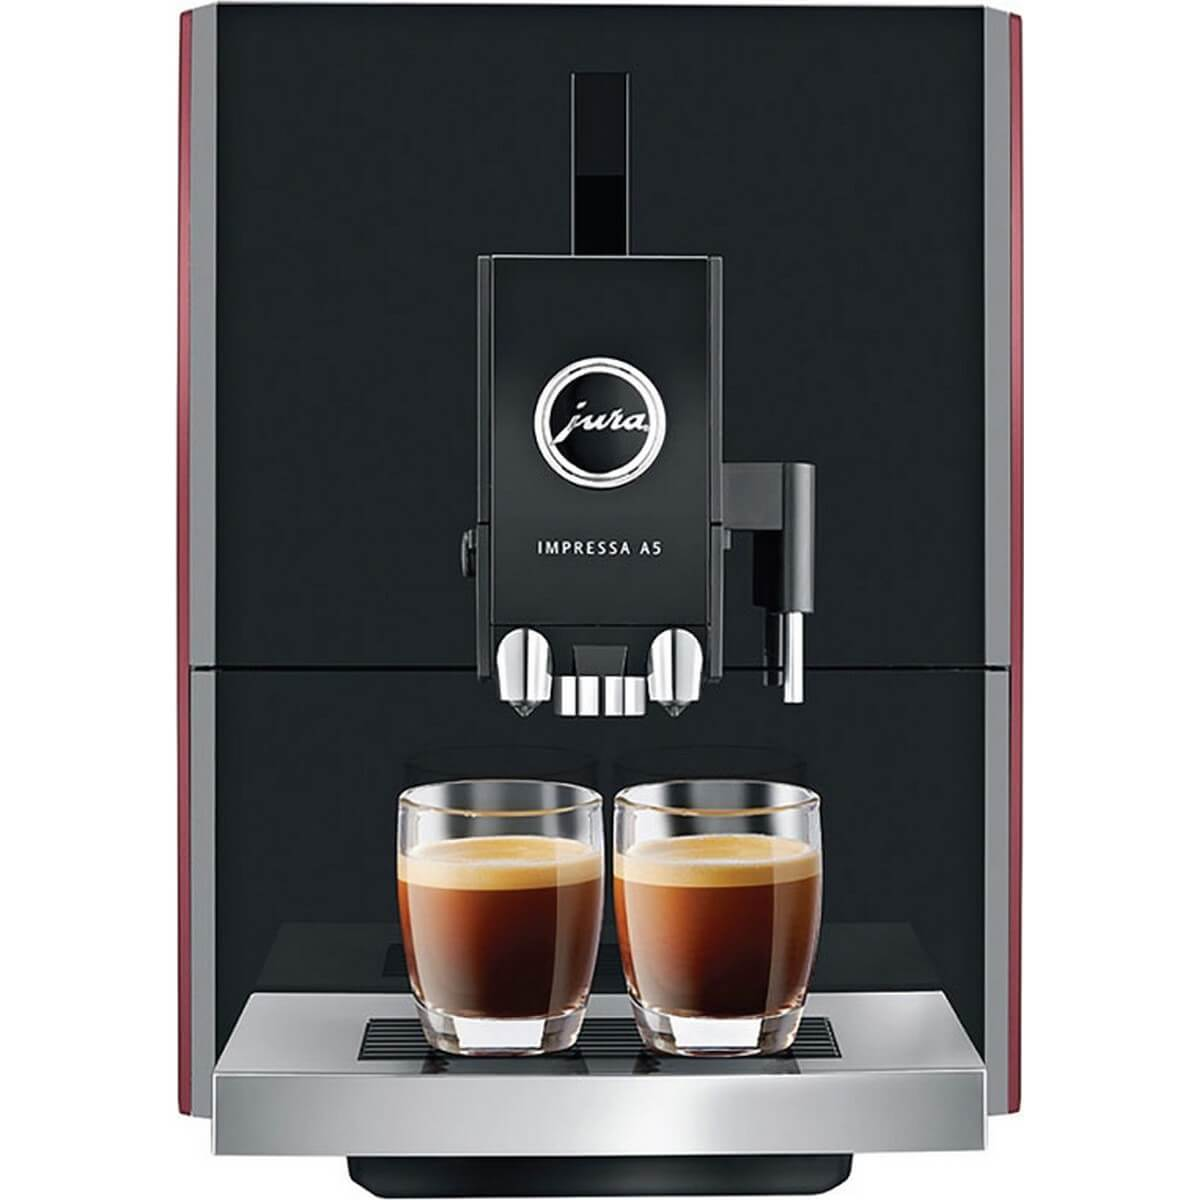 Electronic Coffee Machine Supplier In Malaysia coffee beans machine malaysia supplier jura impressa a5